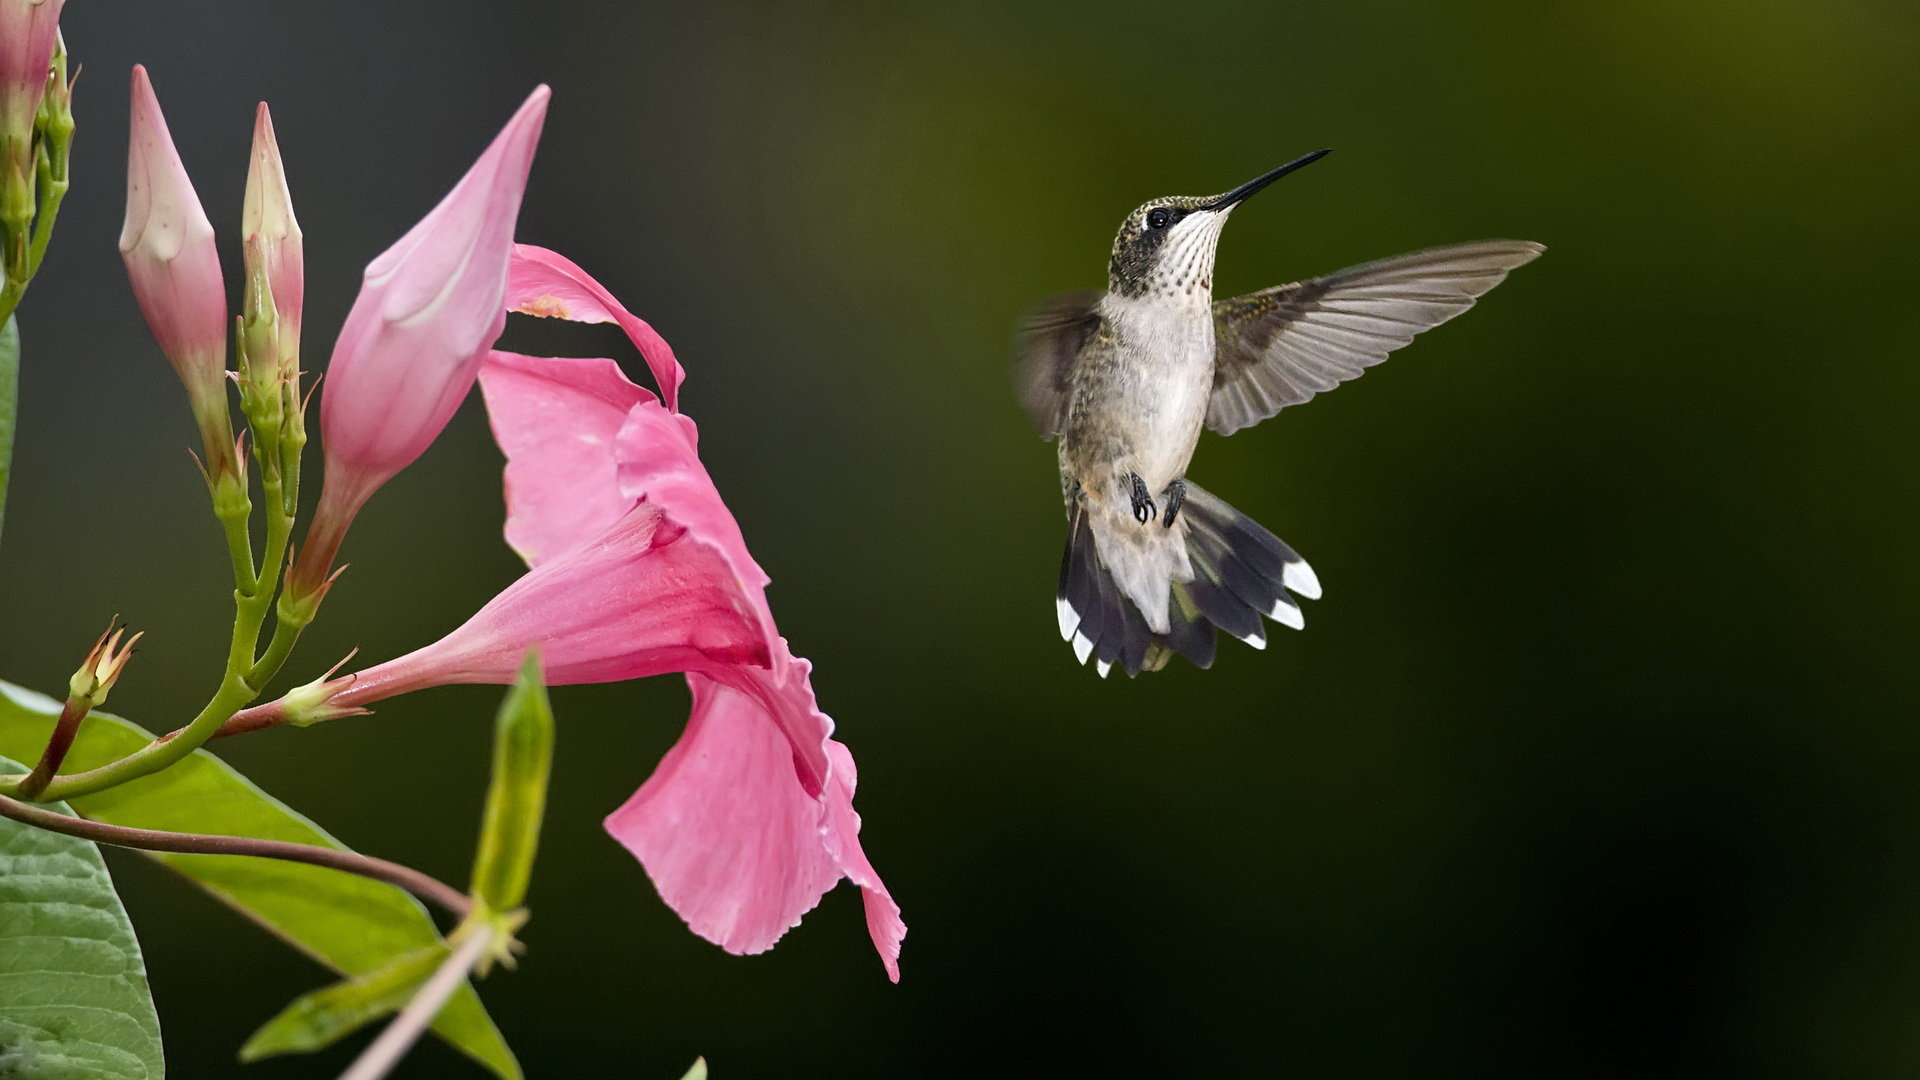 Awesome Hummingbird free wallpaper ID:215813 for hd 1080p computer